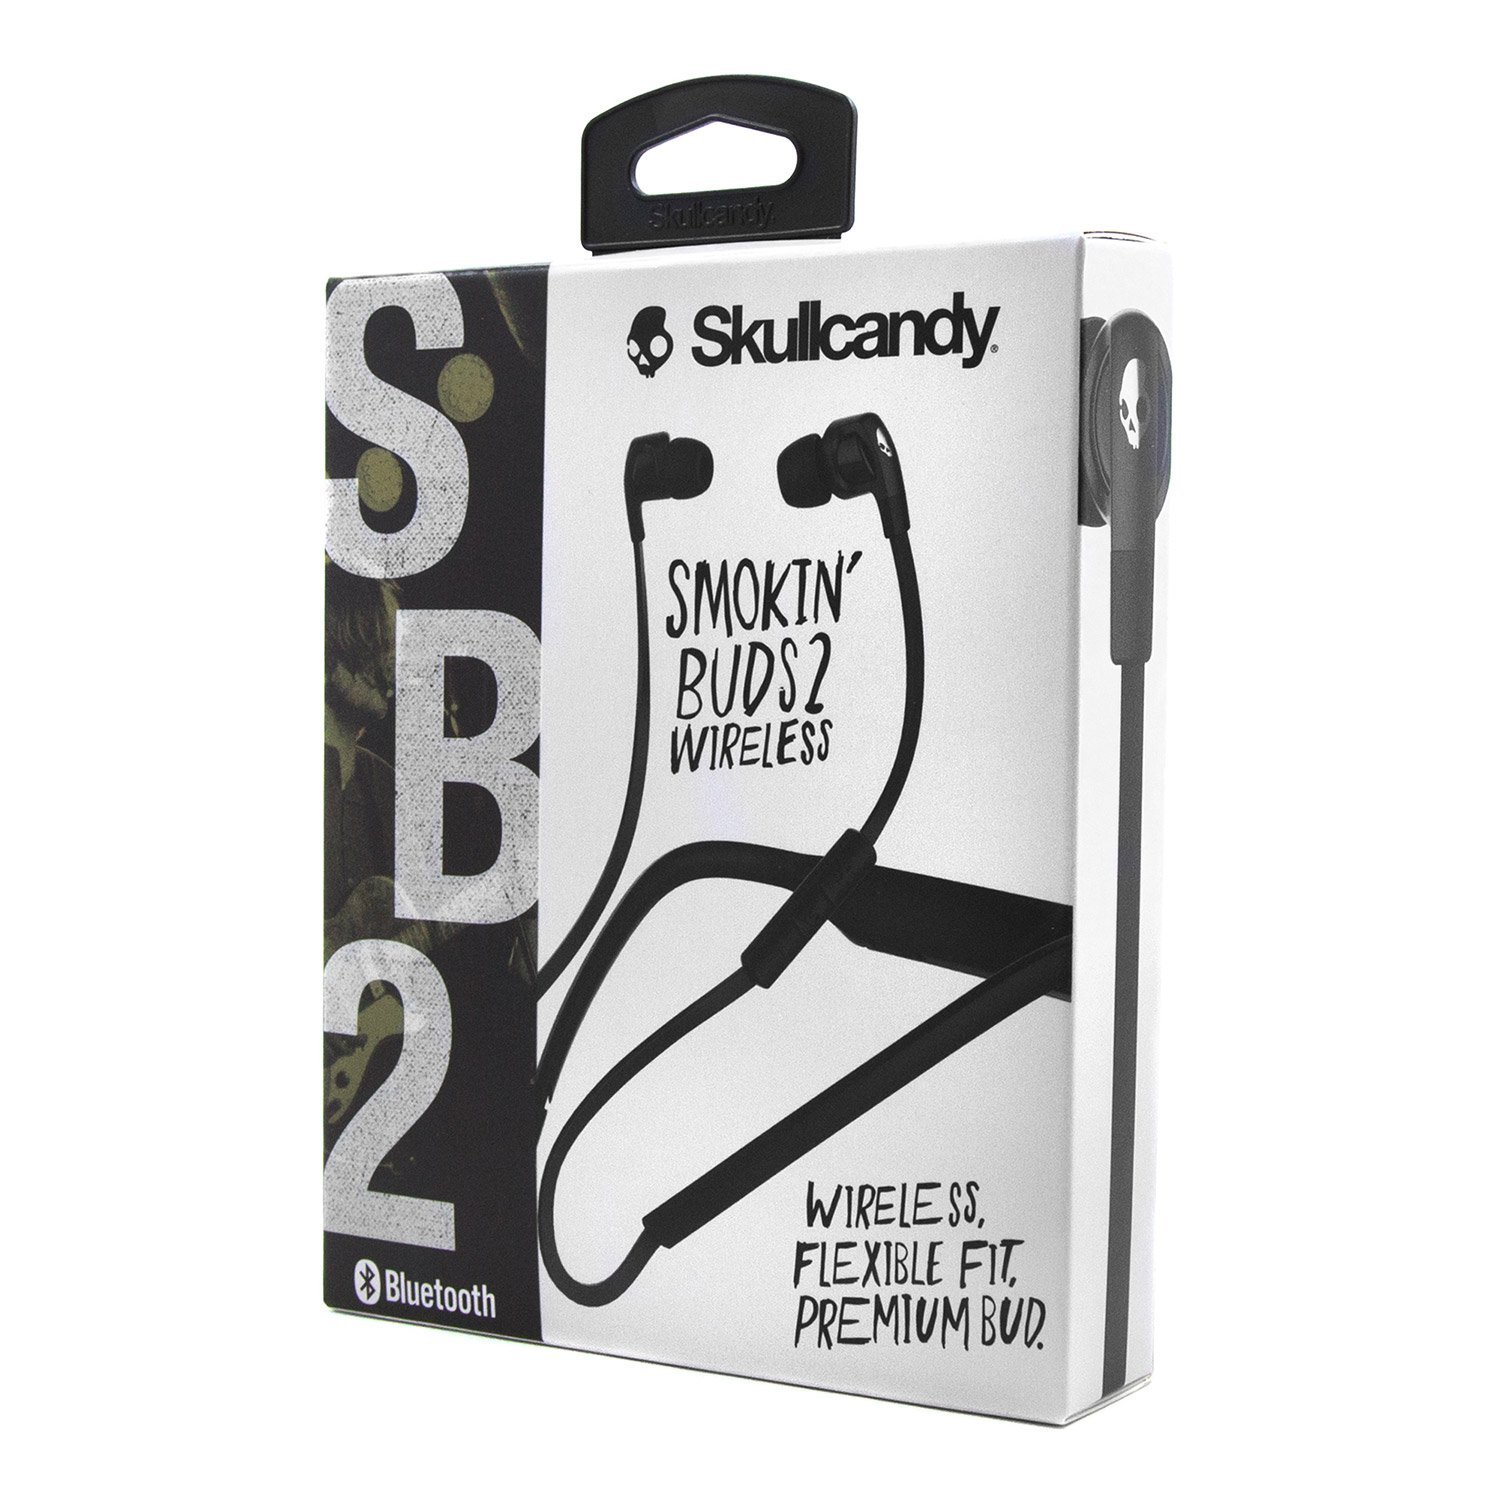 Skullcandy-Smokin-039-Buds-2-in-Ear-Bluetooth-Wireless-Earbuds-with-Microphone-New thumbnail 15